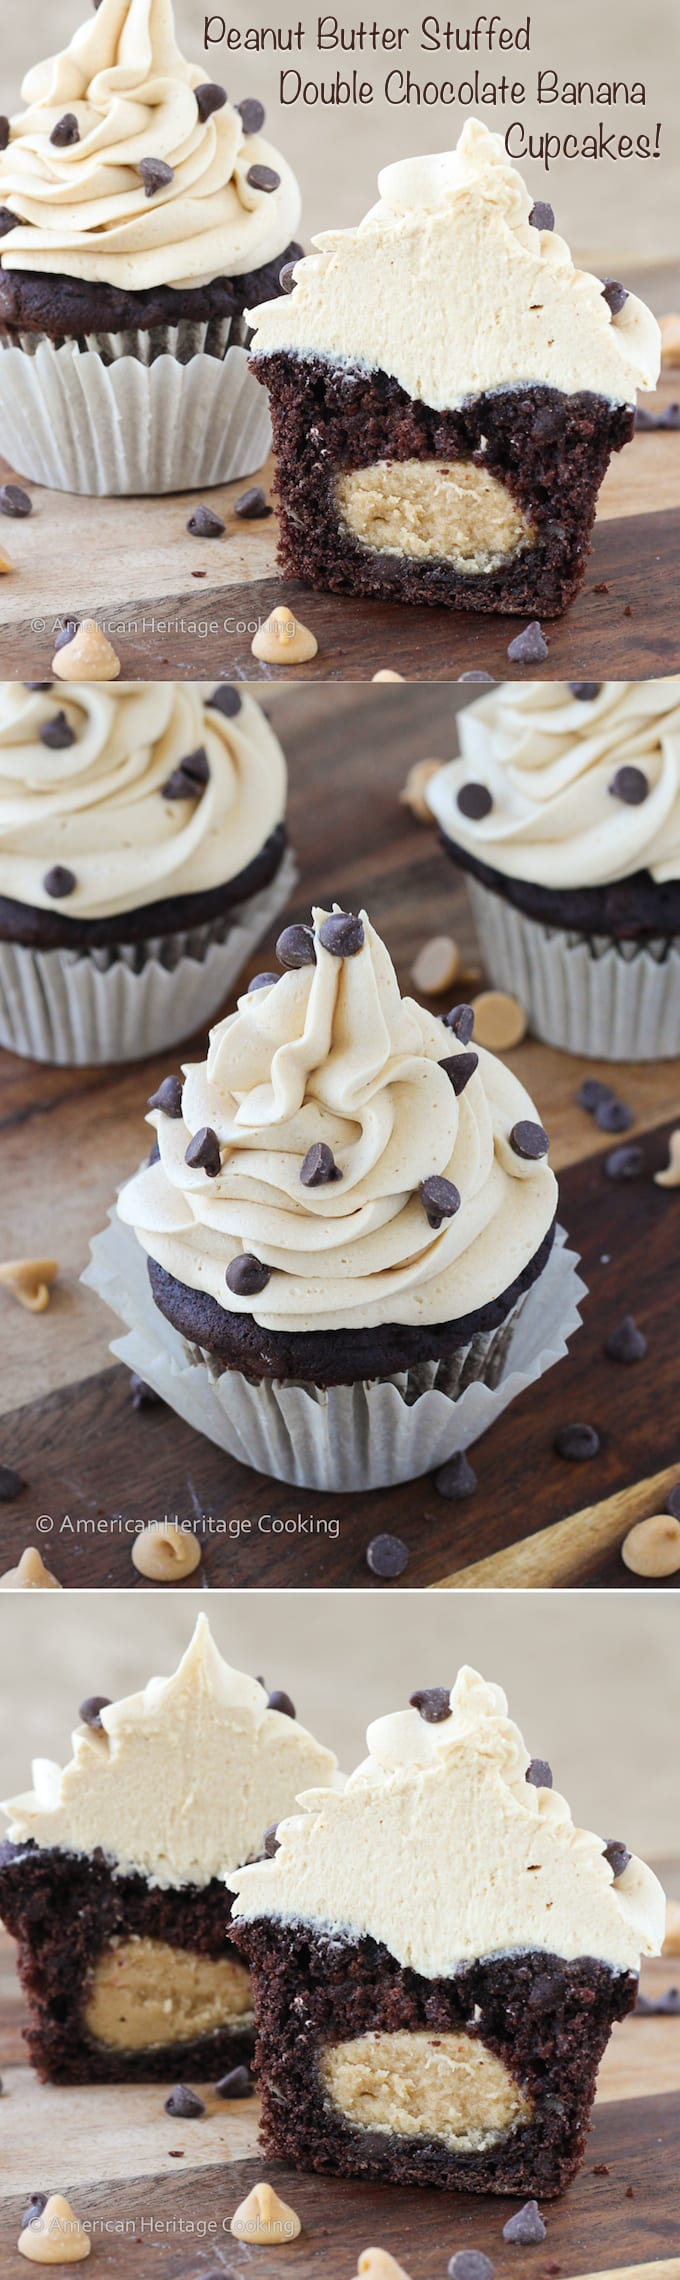 Double Chocolate Banana Cupcakes Stuffed With Peanut Butter